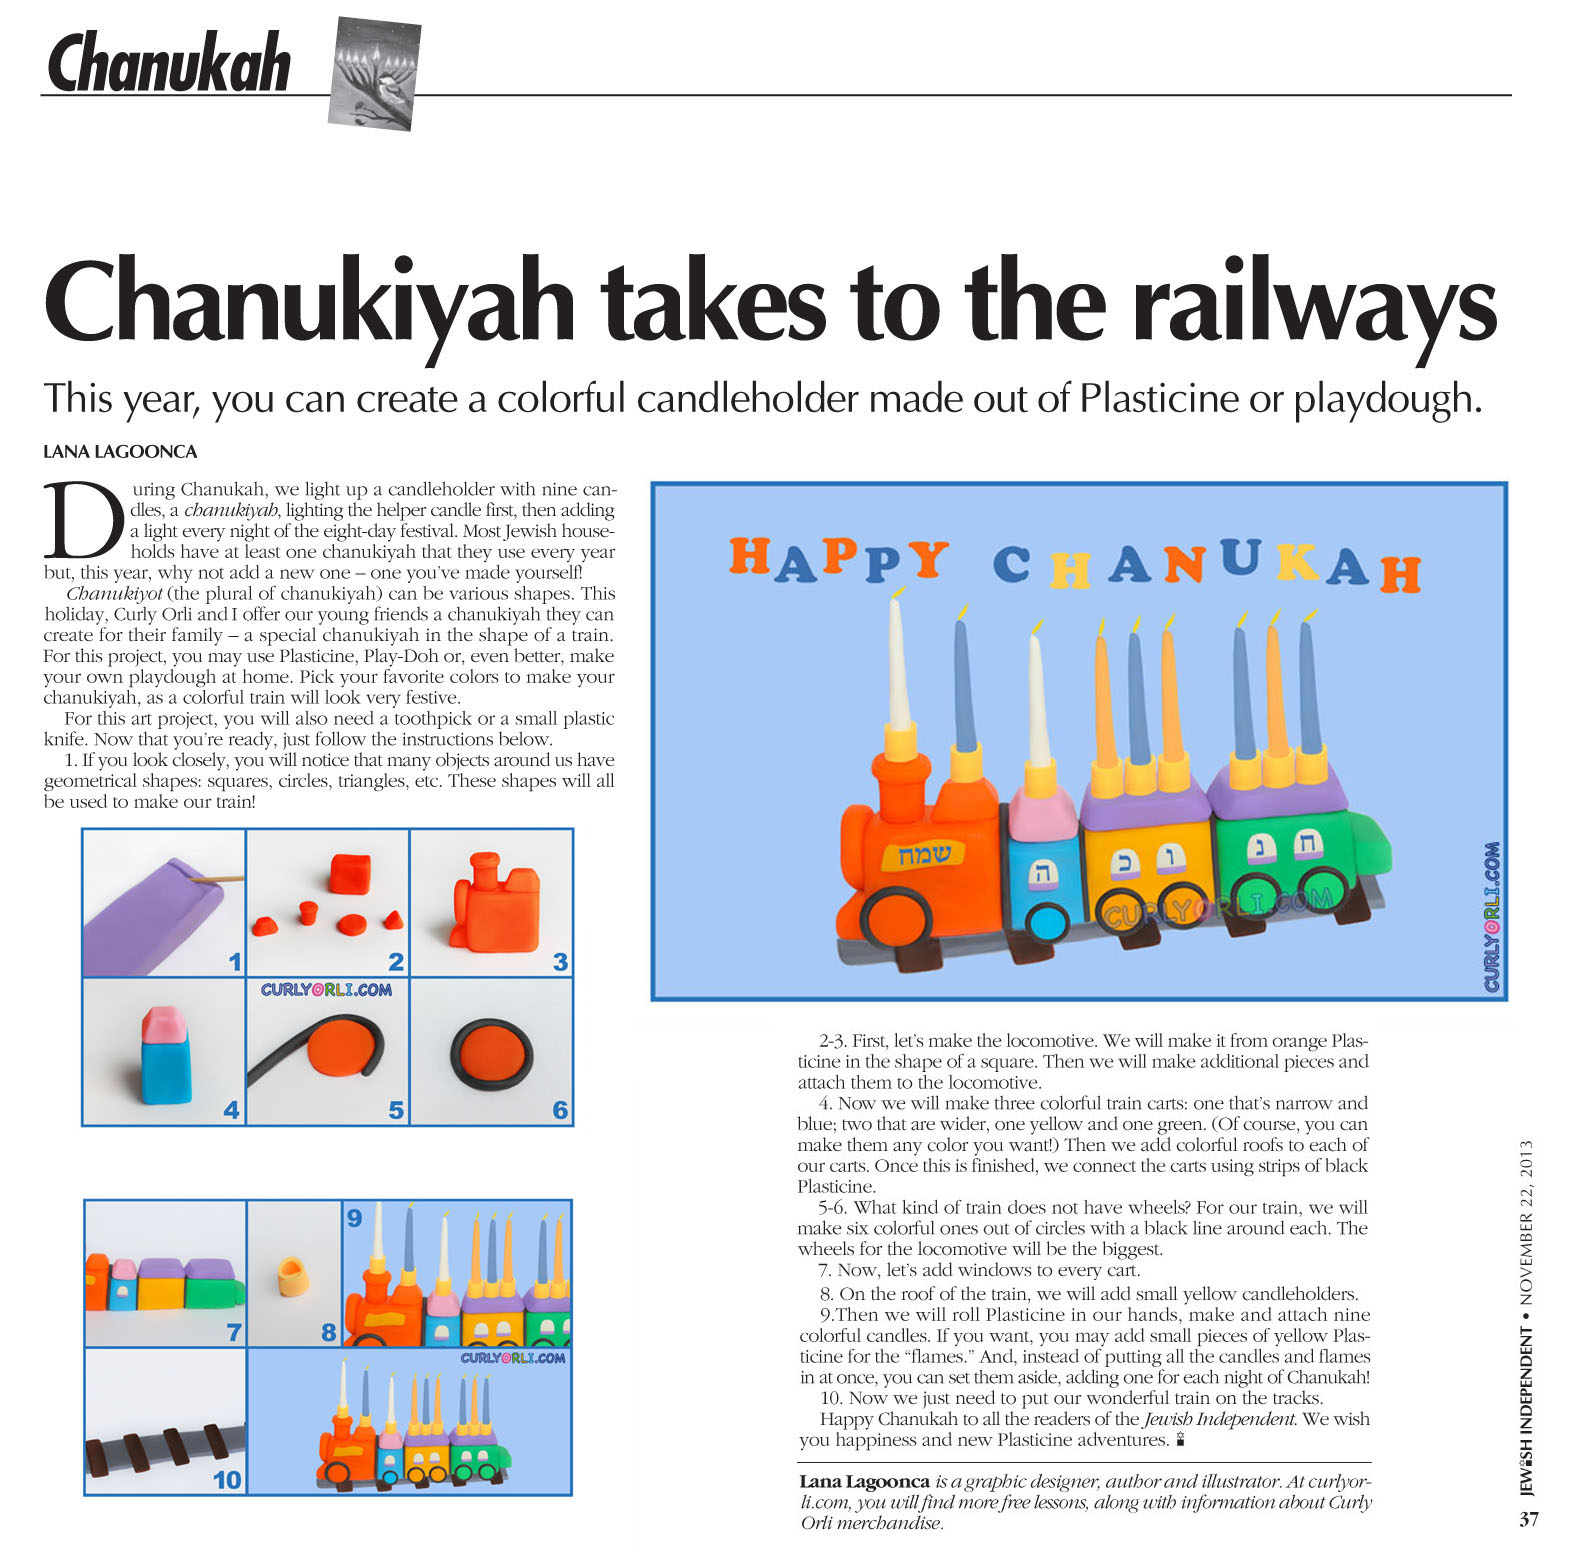 Chanukiah takes to the railways